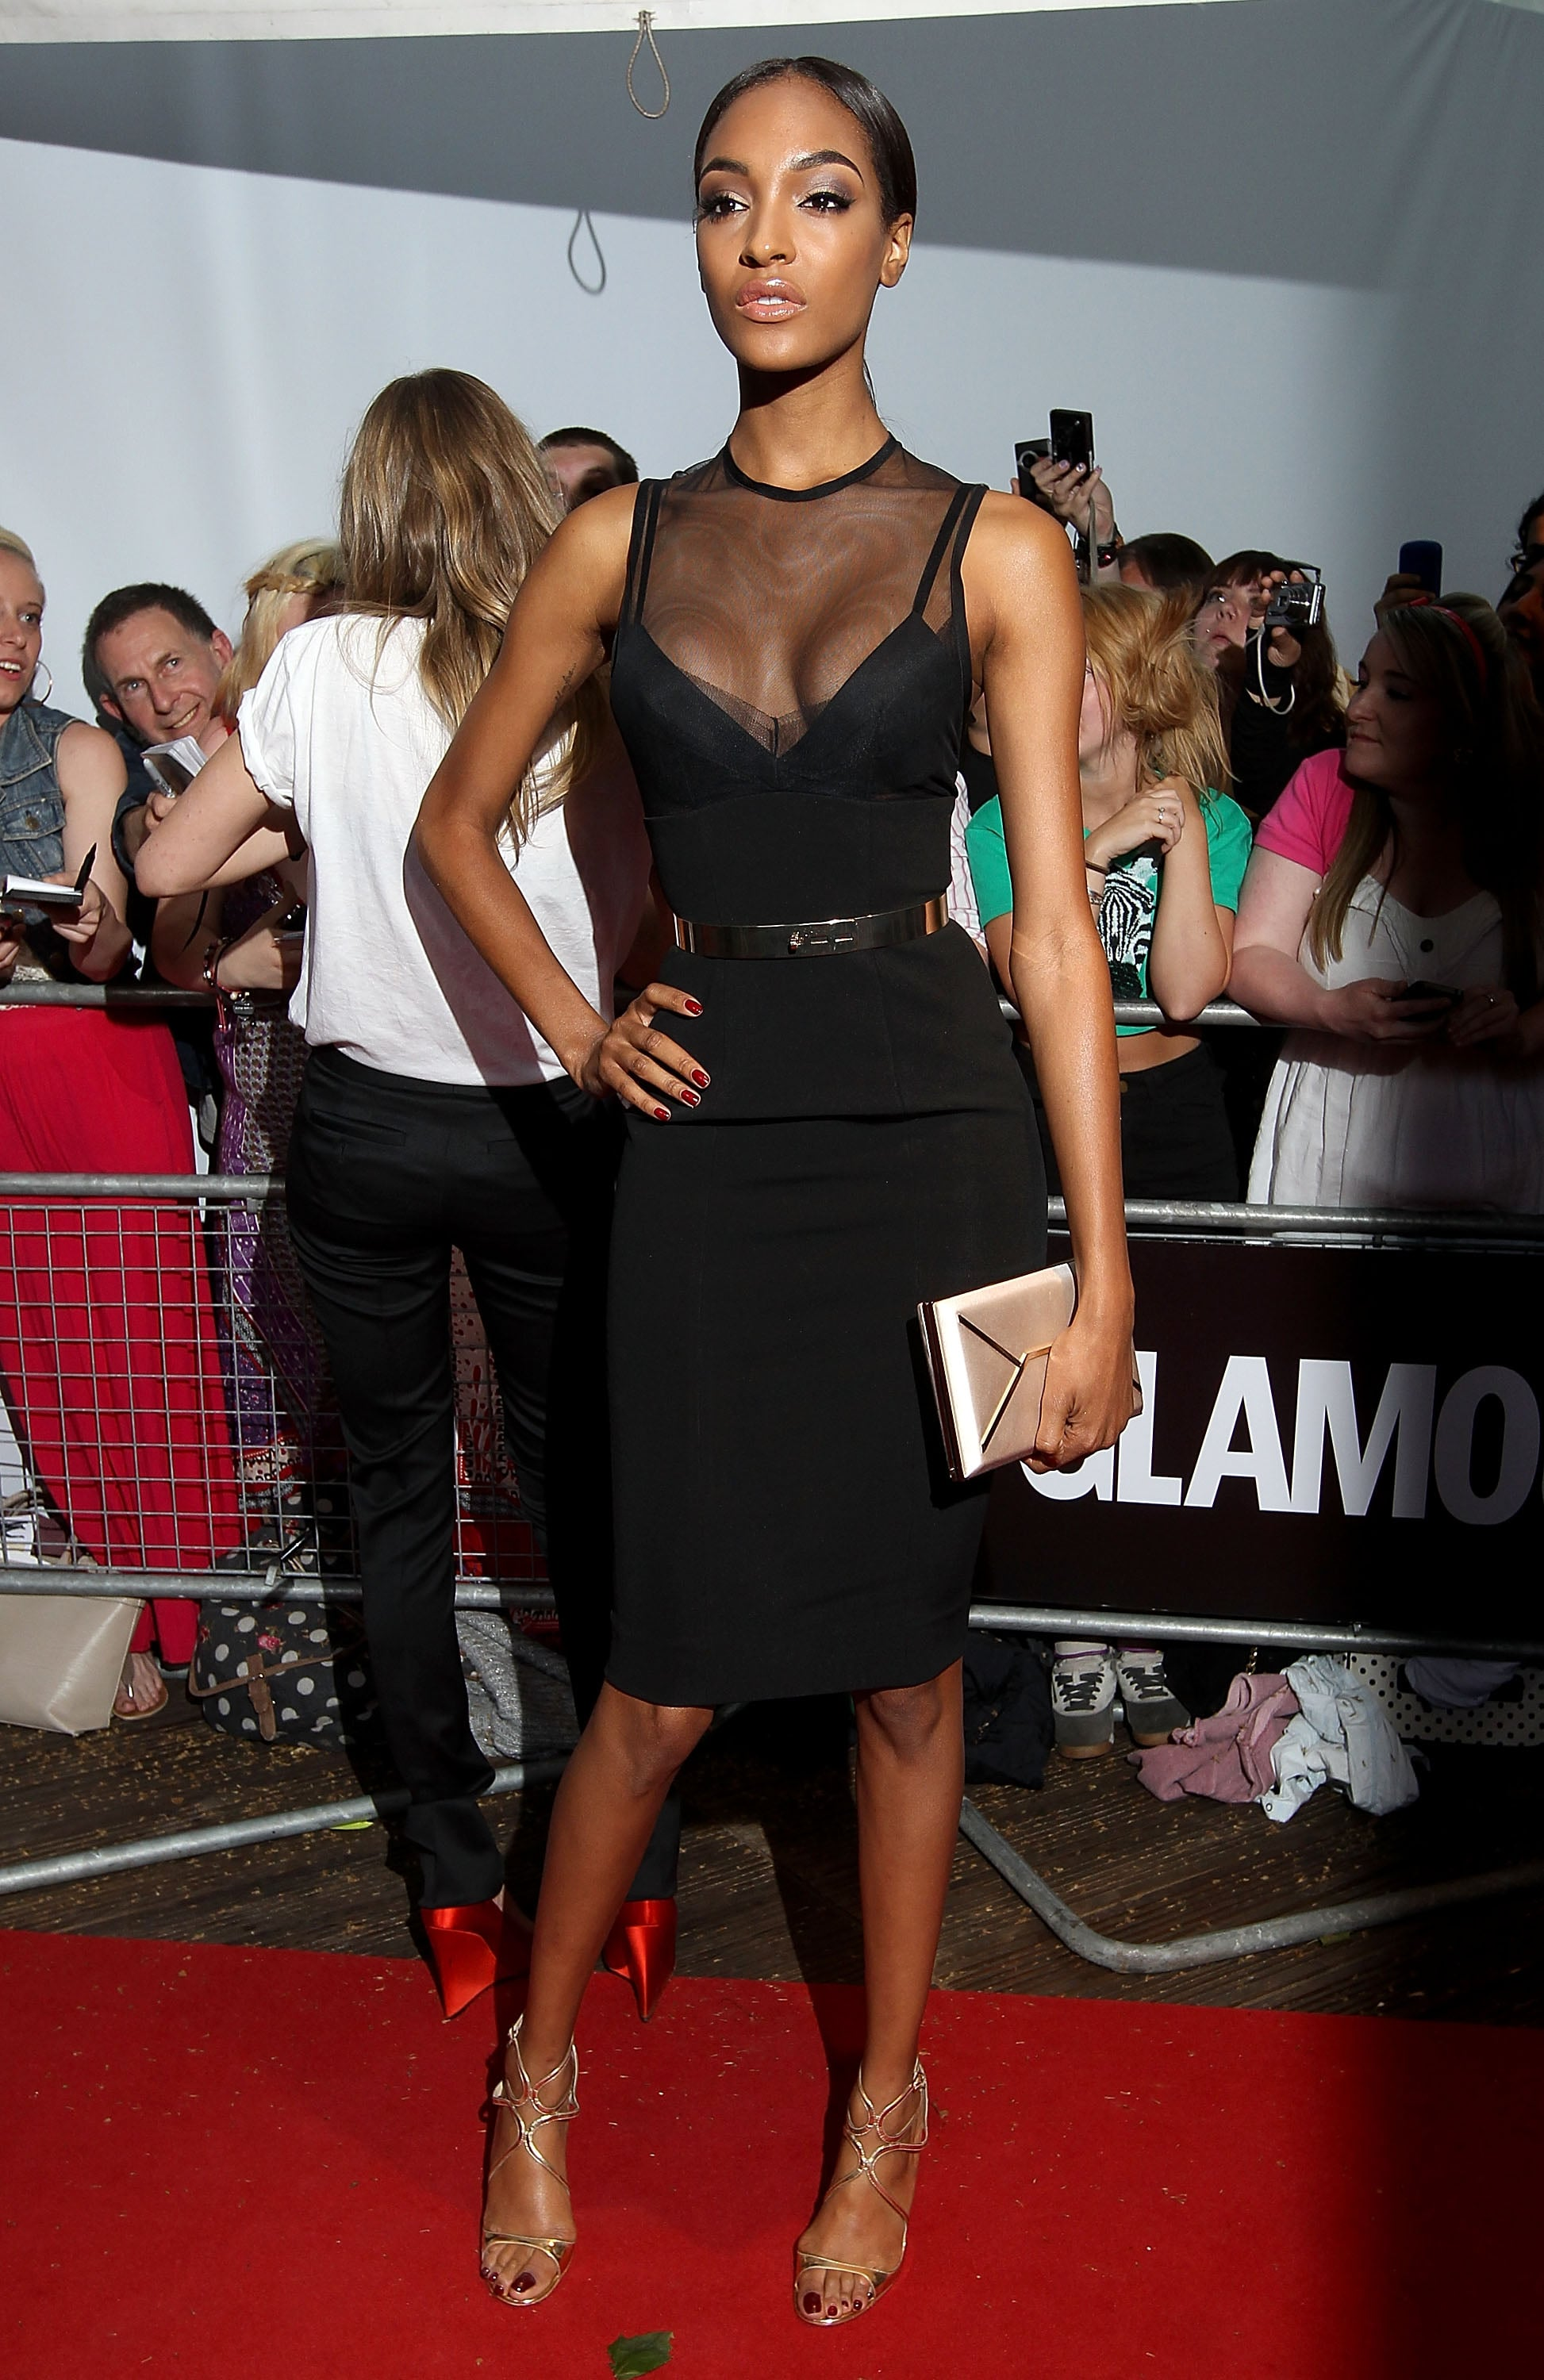 Jourdan Dunn at the 2013 Glamour Women of the Year awards.